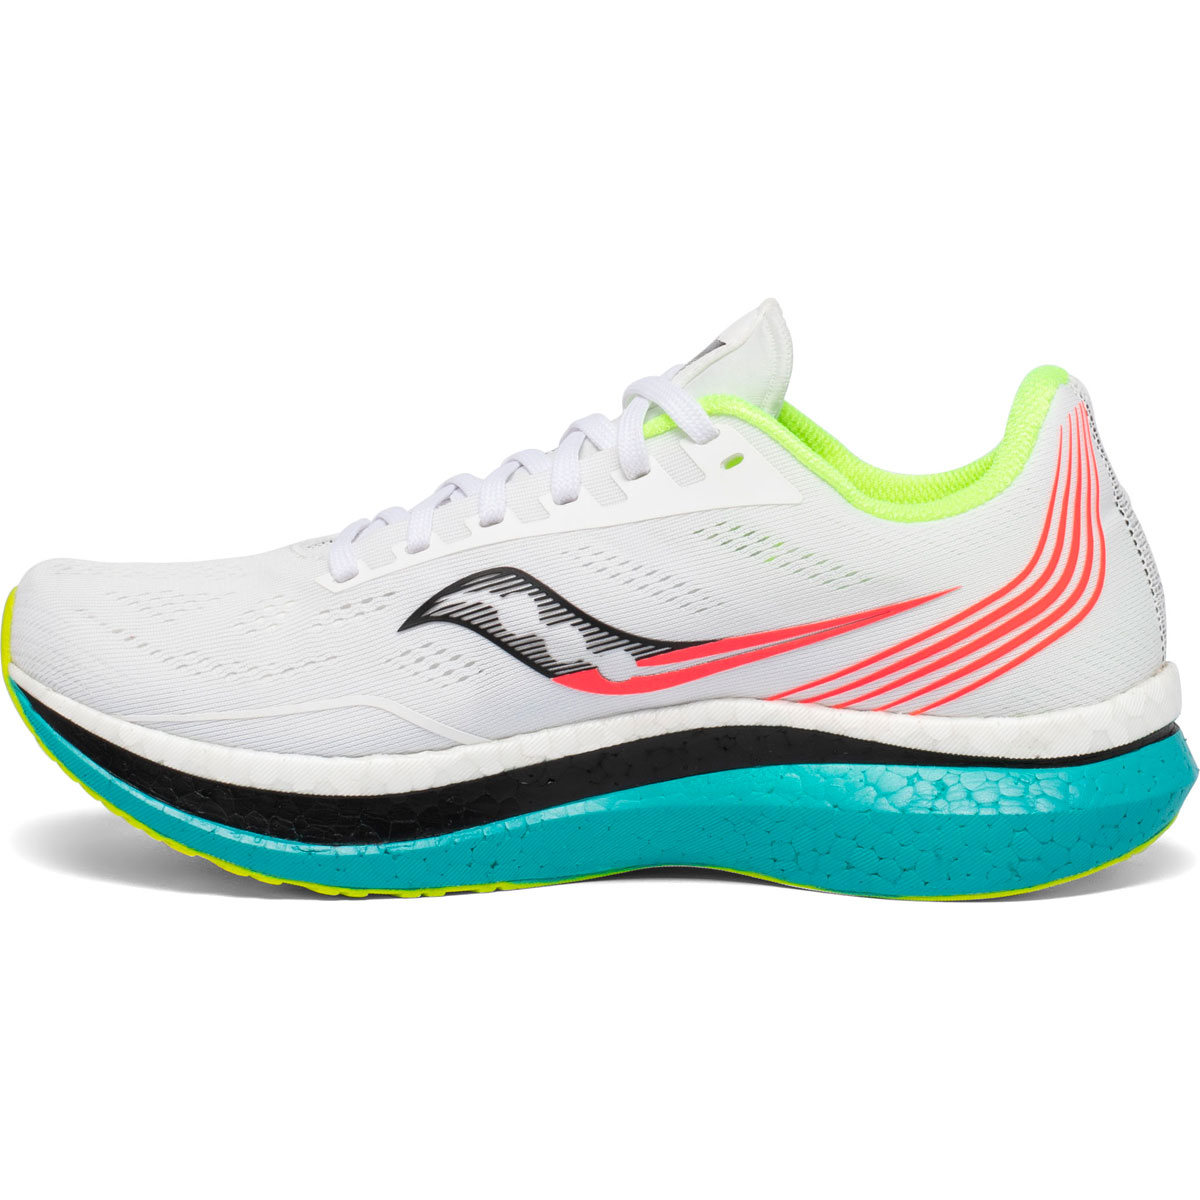 Women's Saucony Endorphin Pro Running Shoe - Color: White Mutant (Regular Width) - Size: 5, White Mutant, large, image 3